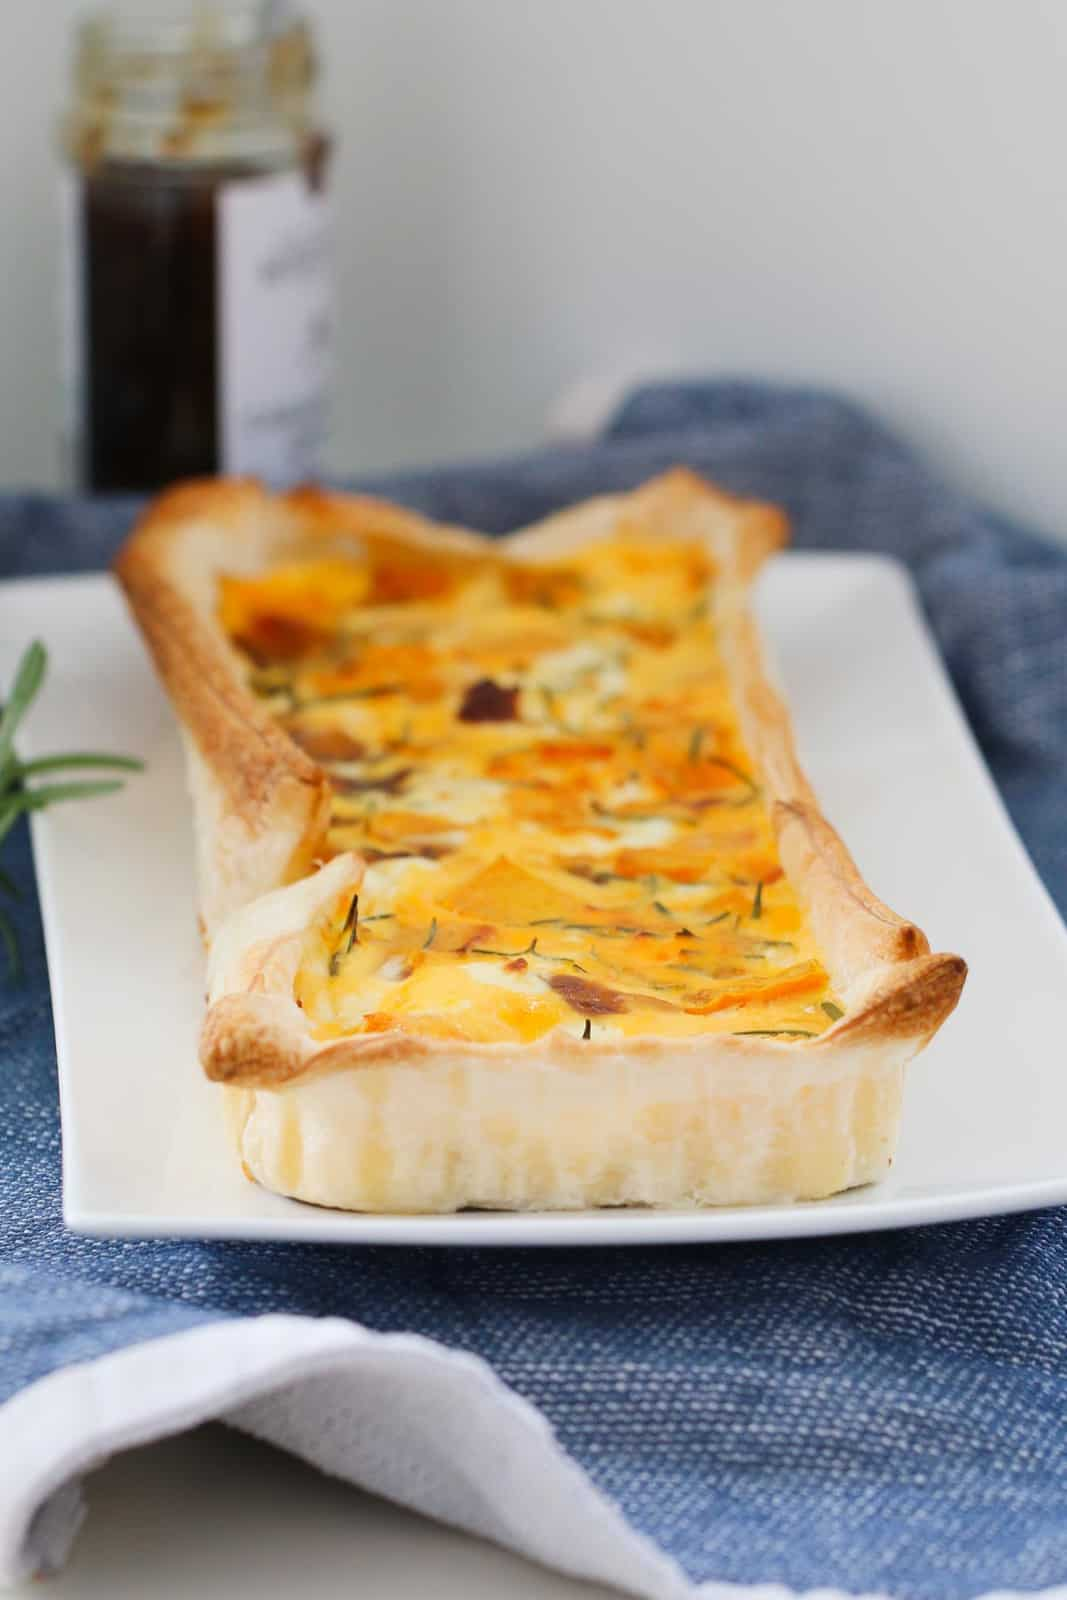 A rectangular Roast Pumpkin, Caramelized Onion & Feta Tart on a white serving dish, sitting on a blue teat towel